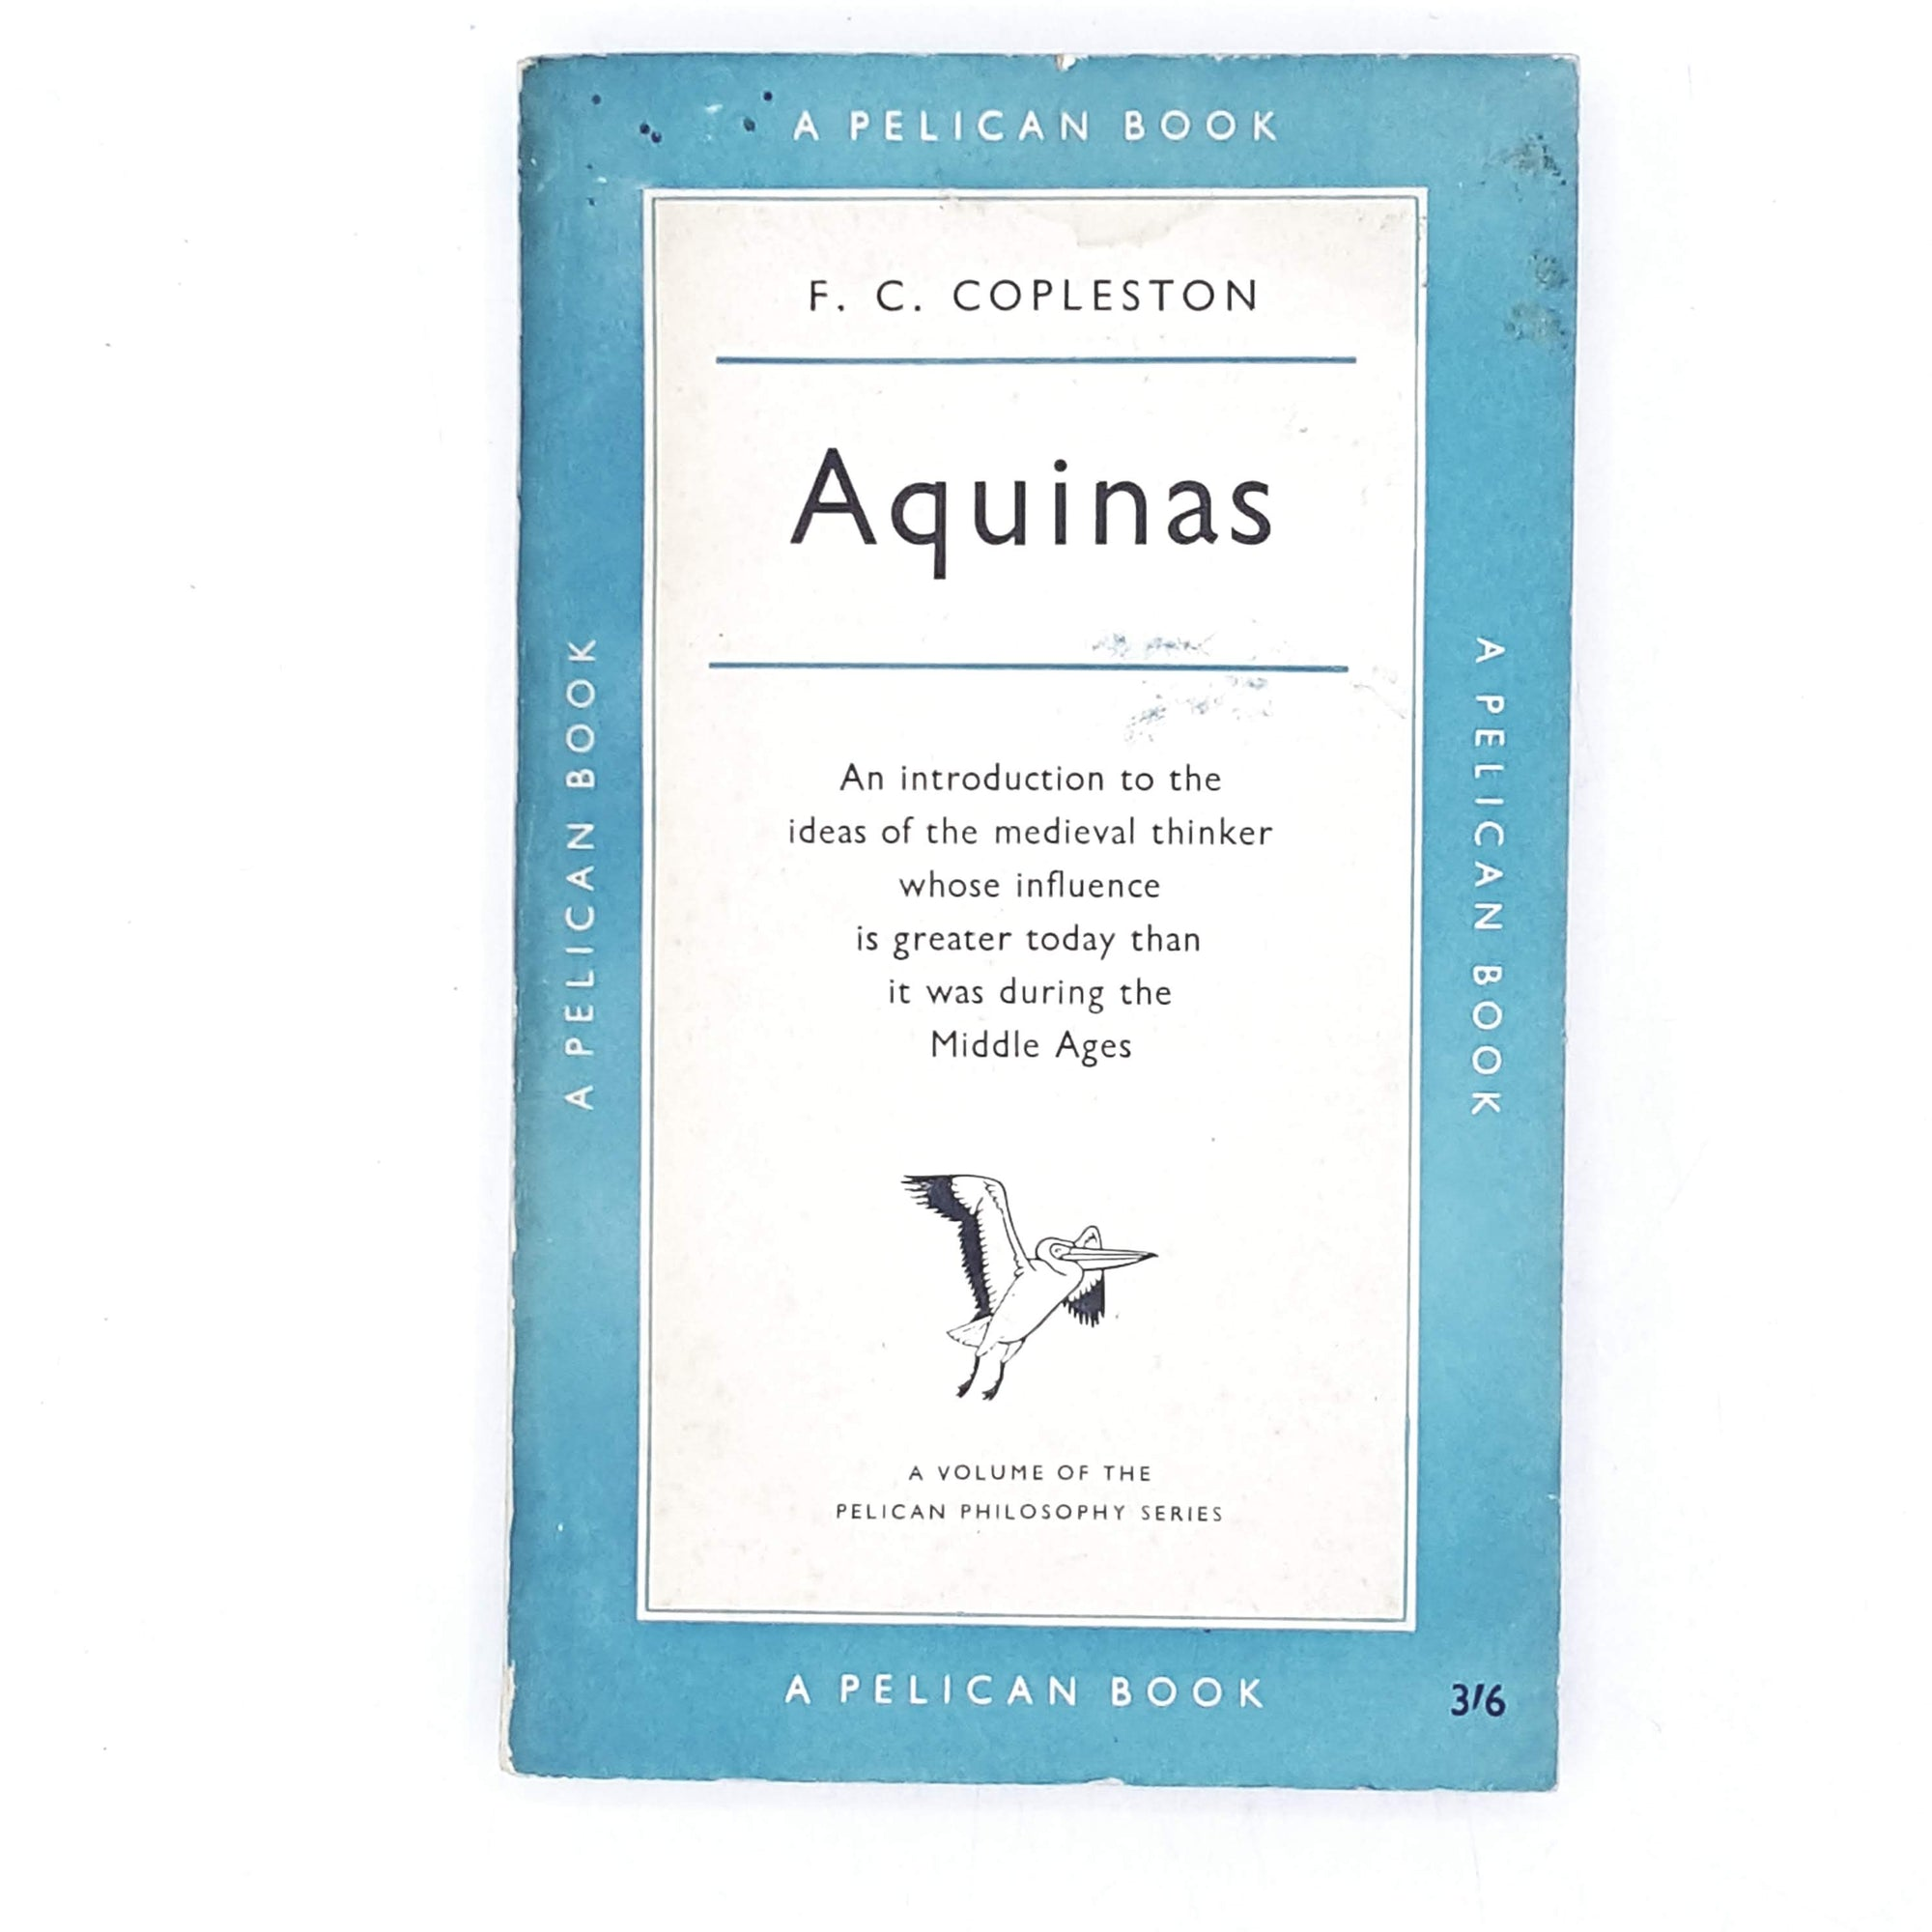 Aquinas by F. C. Copleston 1959